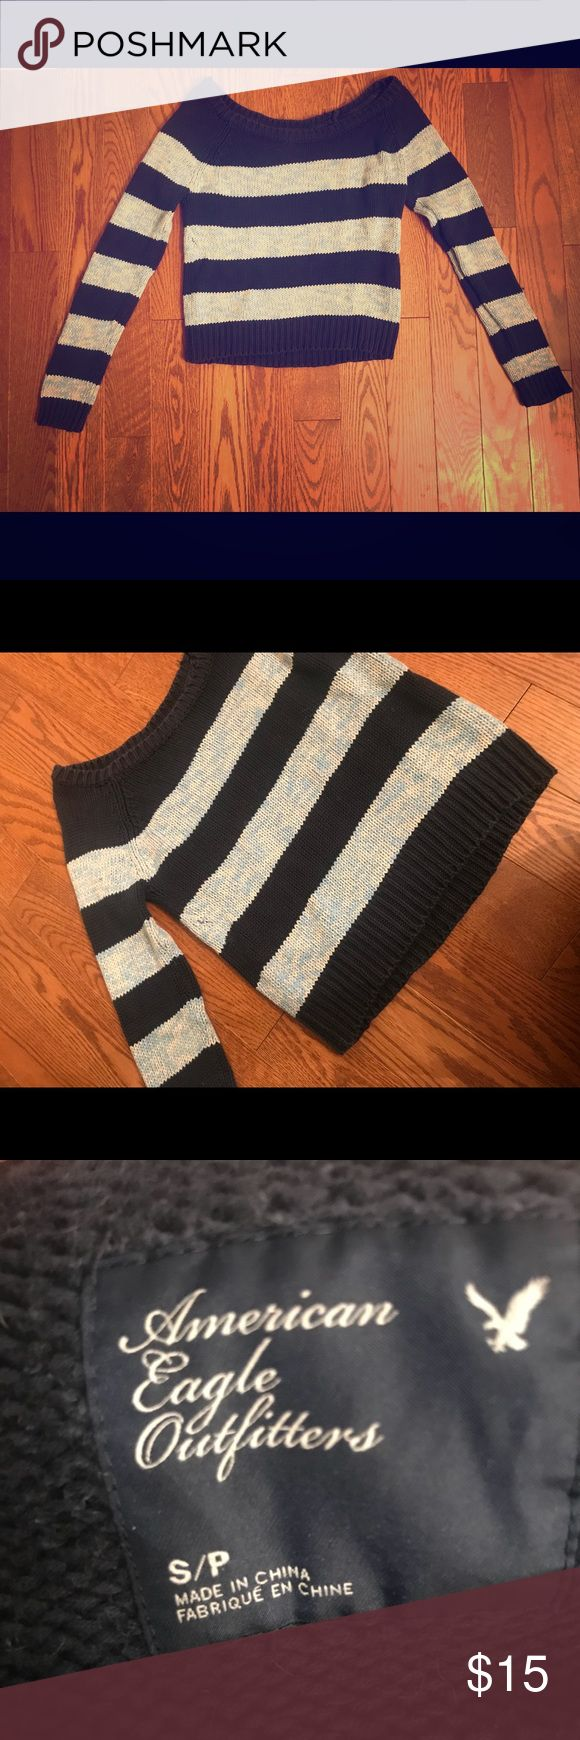 COZY STRIPED WOVEN AMERICAN EAGLE SWEATER Navy and sky blue striped, woven, American Eagle sweater. So warm and cozy!!!!! Definitely a great addition to your wardrobe!!! ‼️NOTE: slight pulling of thread at the collar‼️ American Eagle Outfitters Tops